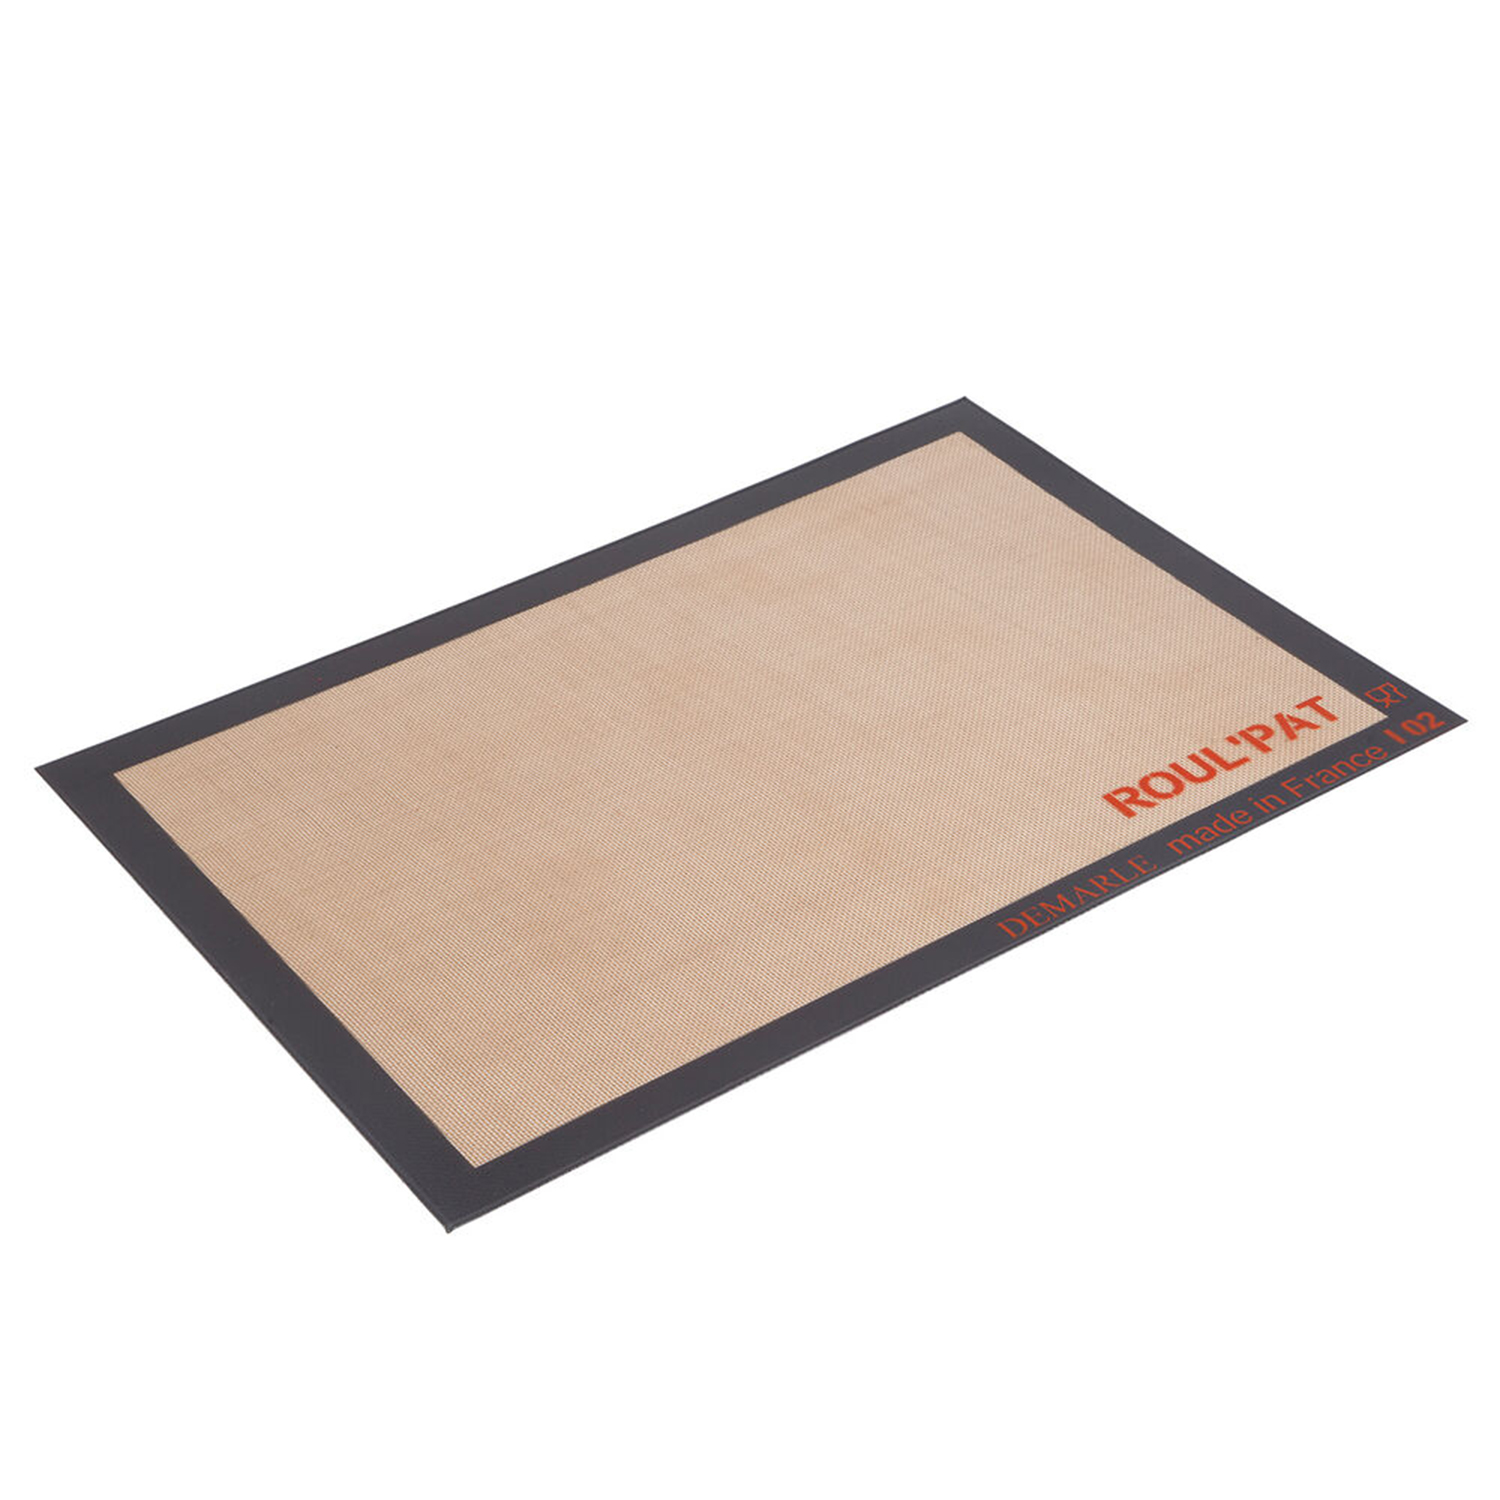 Roul 'Pat Silicone Pastry Mat